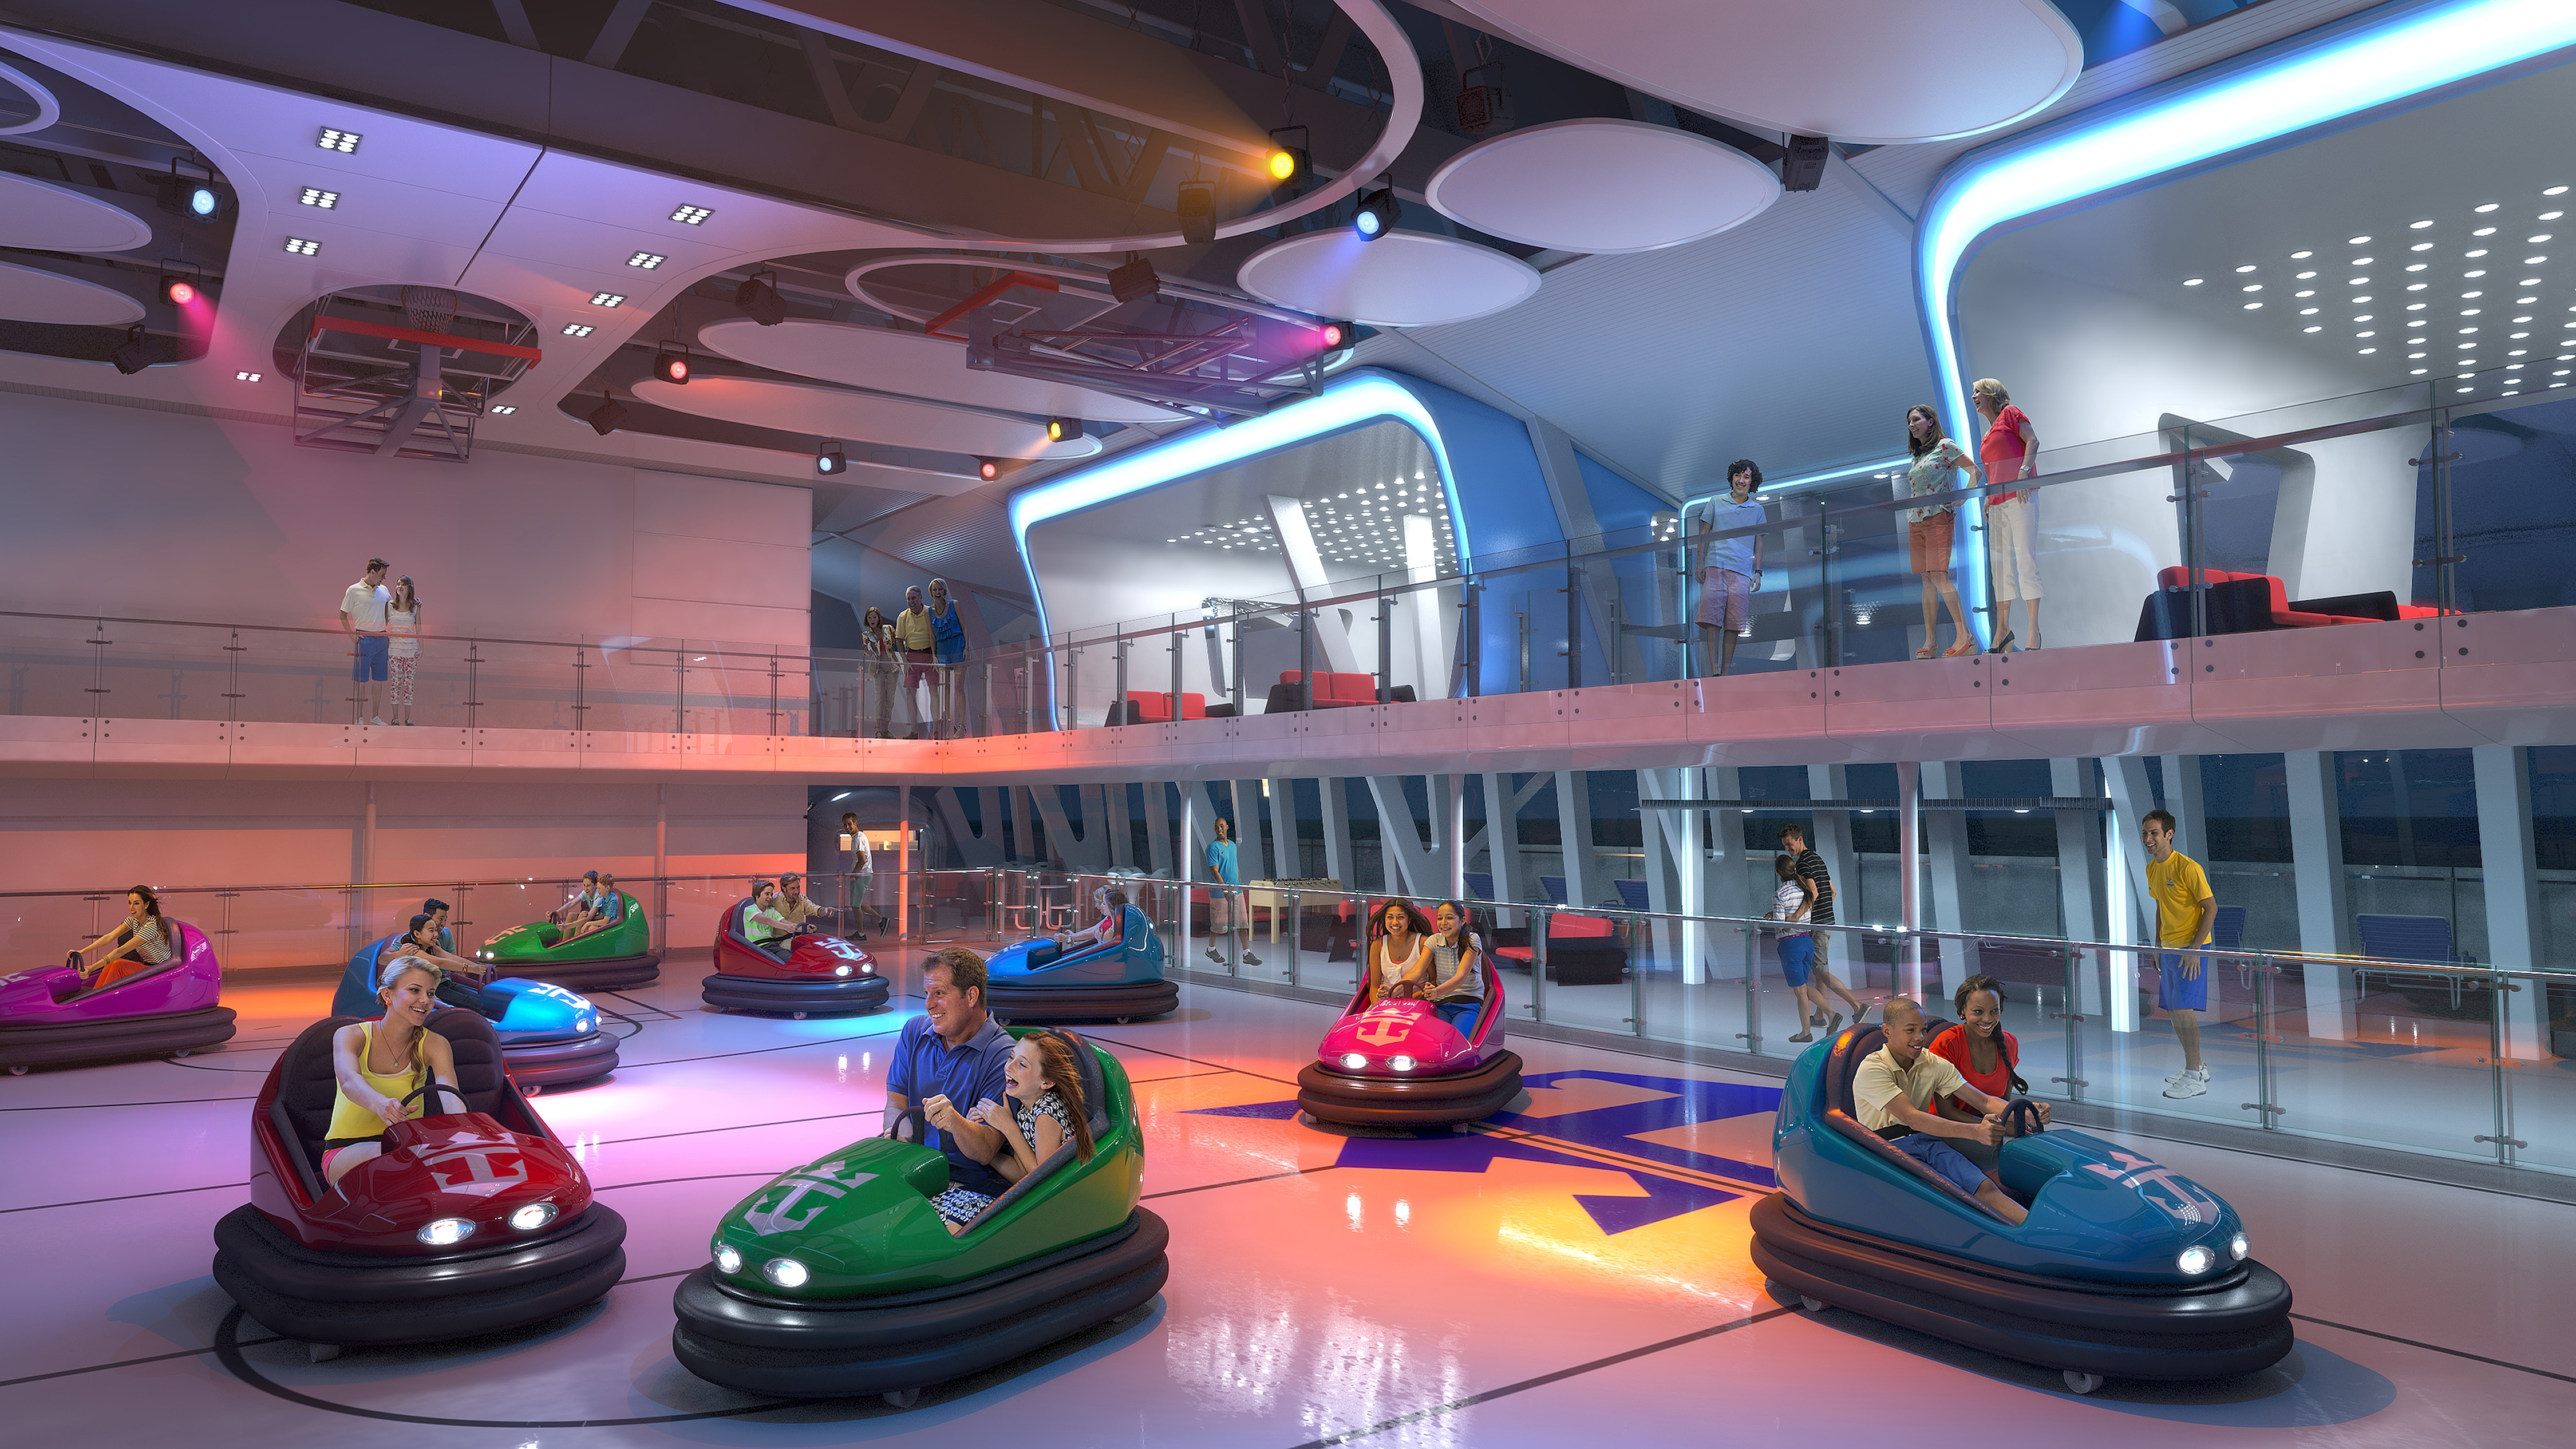 Royal Caribbean International Anthem of the Seas Interior SeaPlex Bumper Cars 2.jpg